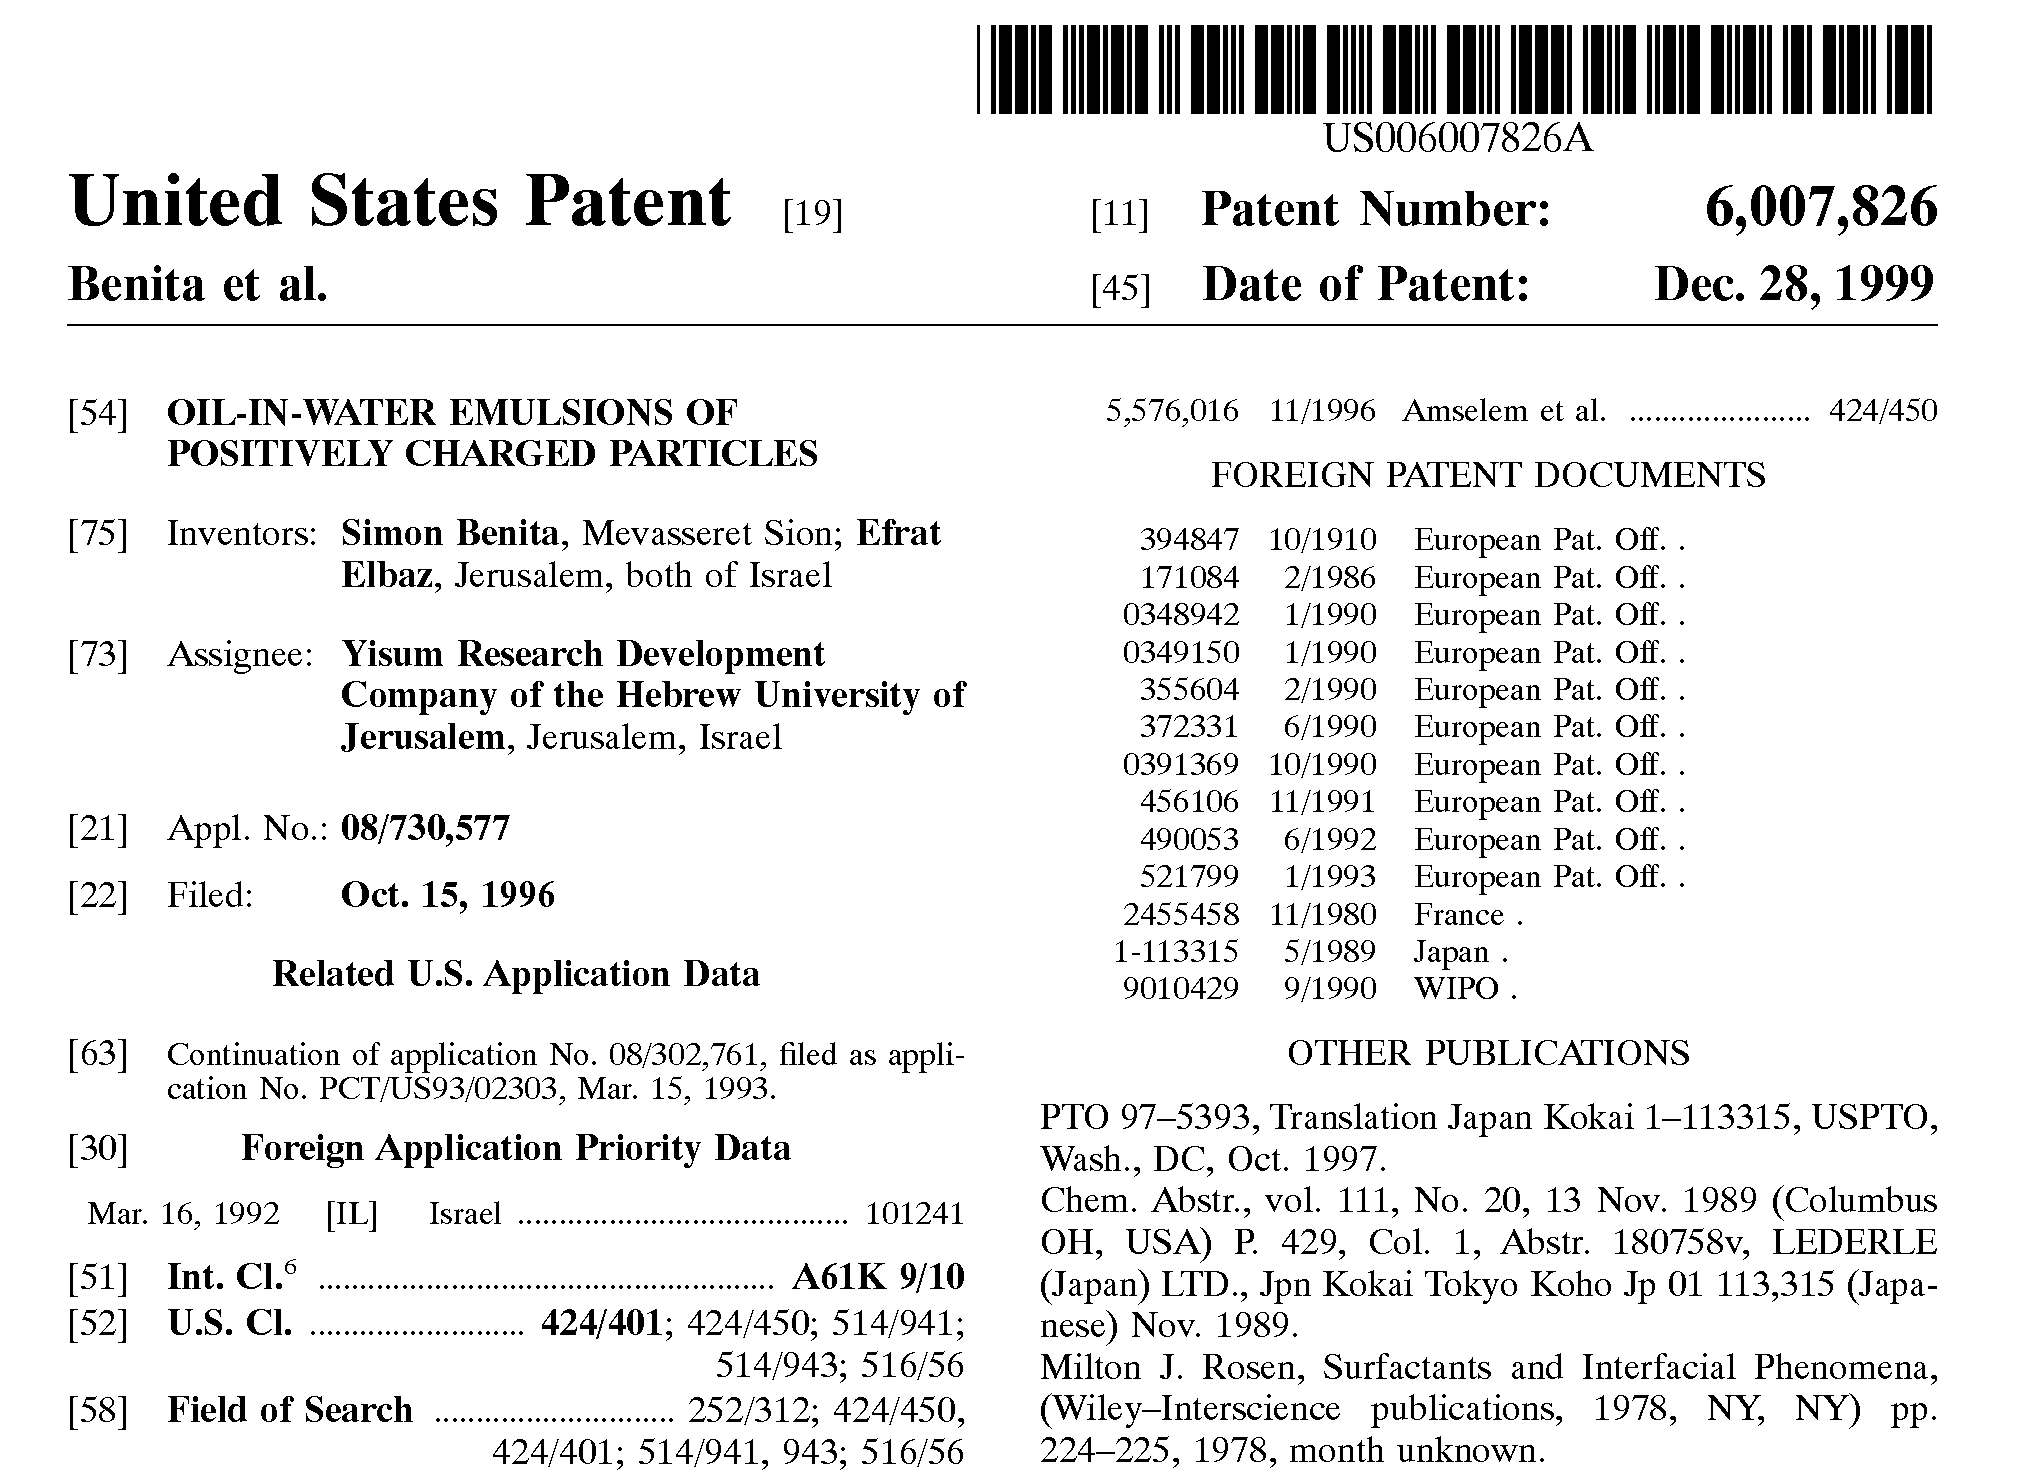 1996 - First Patent